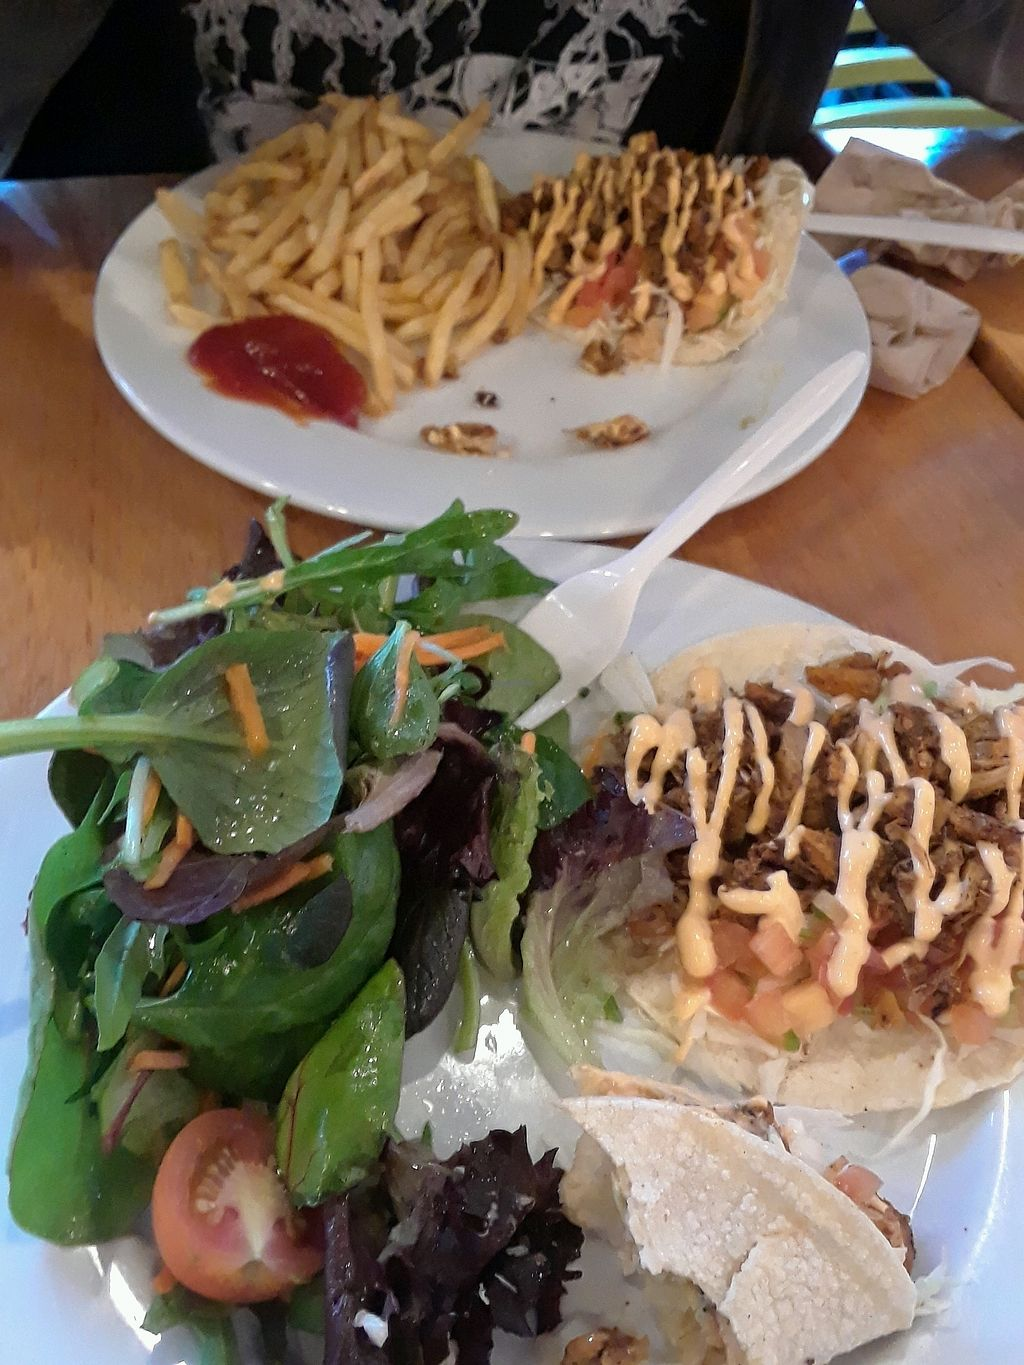 "Photo of One Veg World  by <a href=""/members/profile/OceanaMount"">OceanaMount</a> <br/>Jackfruit taco plates  <br/> October 23, 2017  - <a href='/contact/abuse/image/58963/317911'>Report</a>"